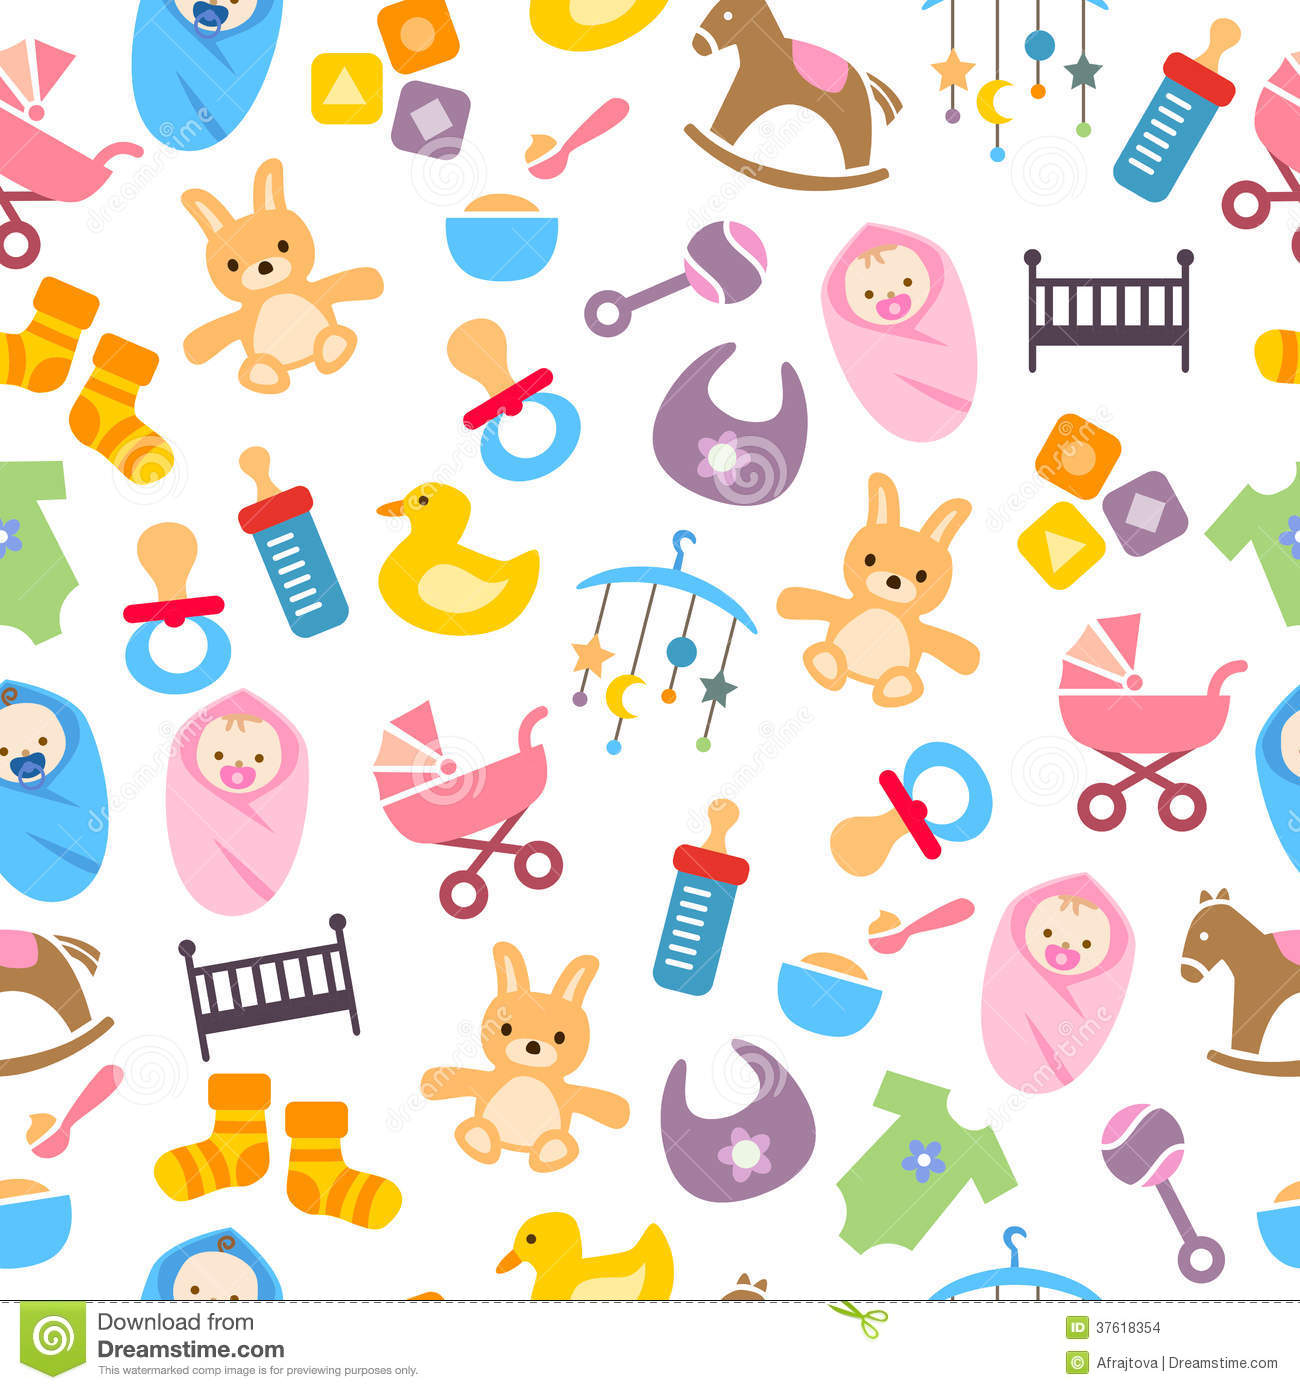 Cute baby clipart patterns svg library stock Cute Baby Pattern Stock Images - Image: 37618354 svg library stock